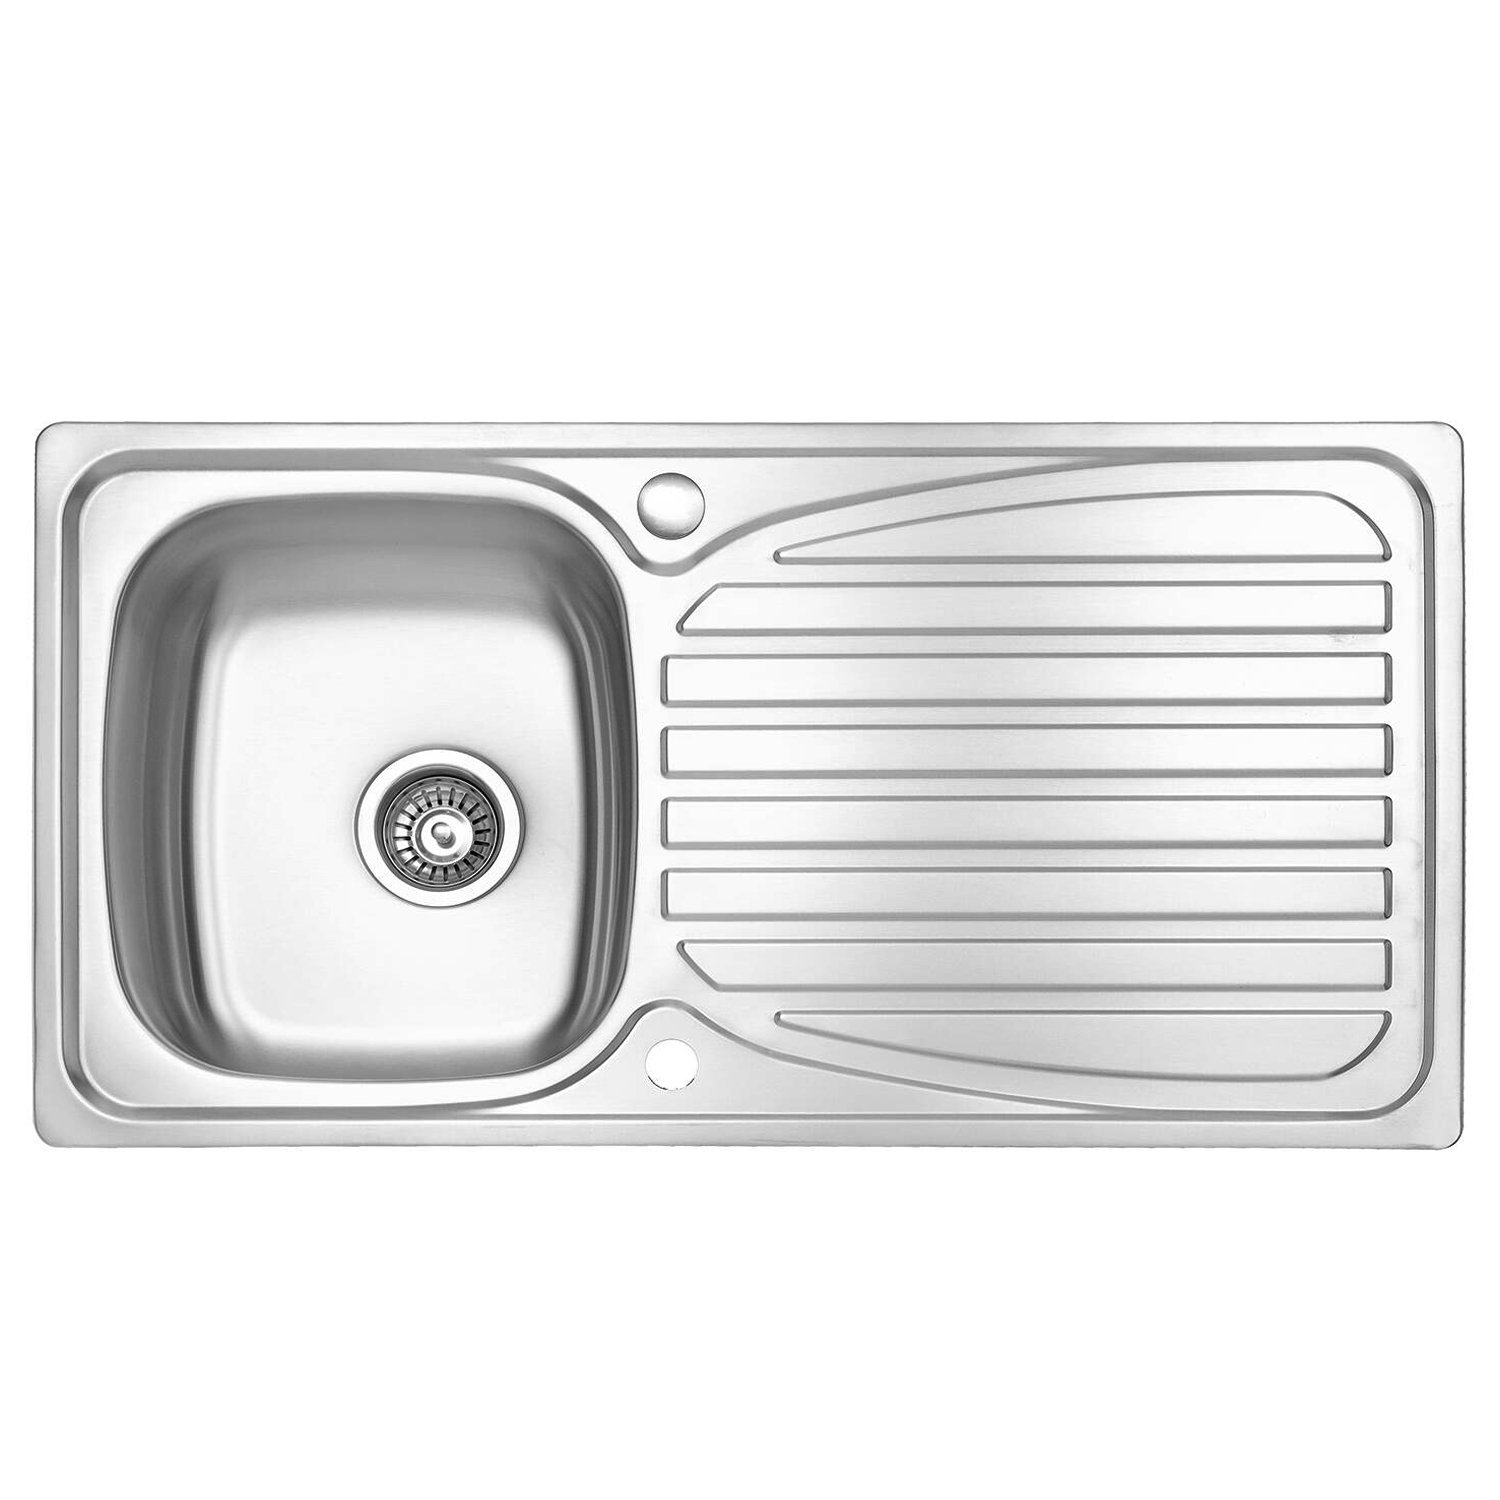 Phenomenal Jass Ferry Kitchen Sink Inset Stainless Steel Single 1 Bowl Reversible Drainer With Waste Pipes Clips 10 Year Guarantee Download Free Architecture Designs Scobabritishbridgeorg